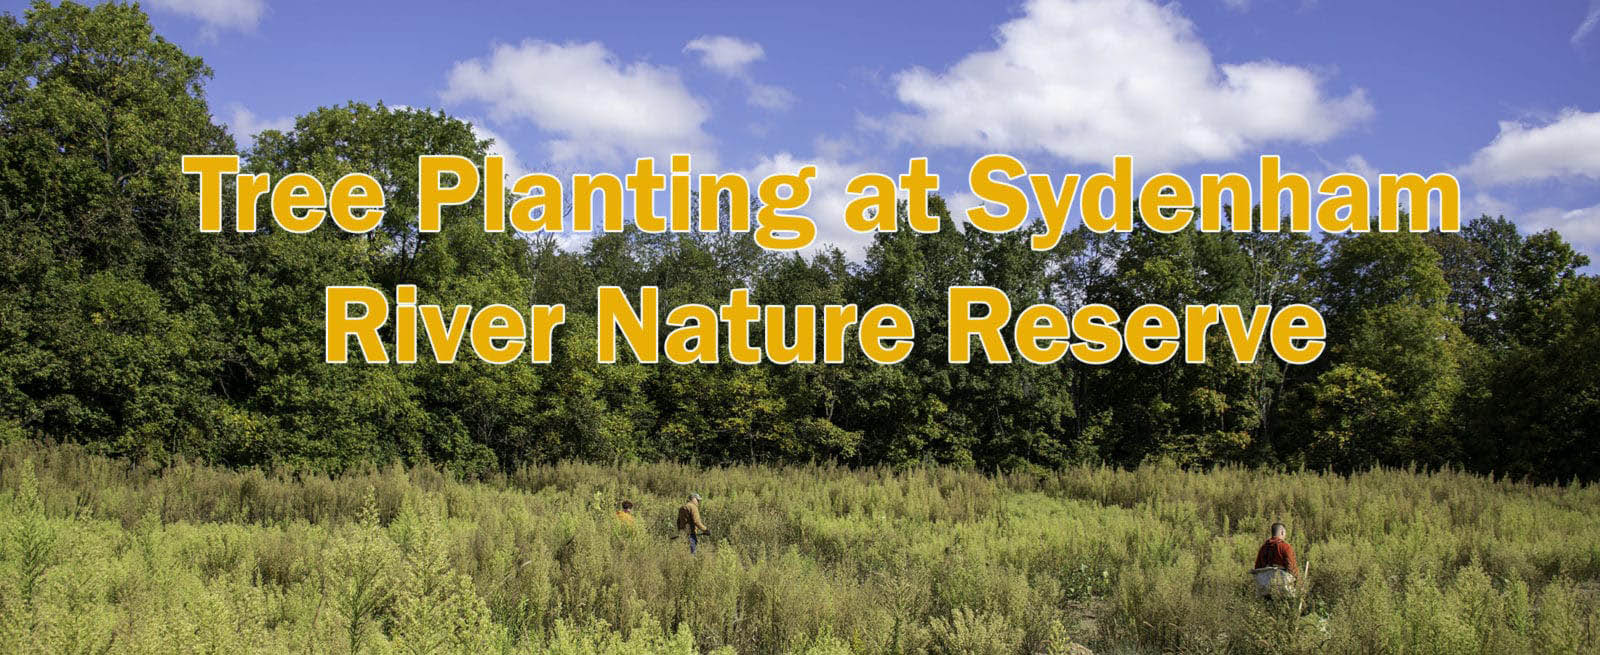 Tree Planting at Sydenham River Nature Reserve